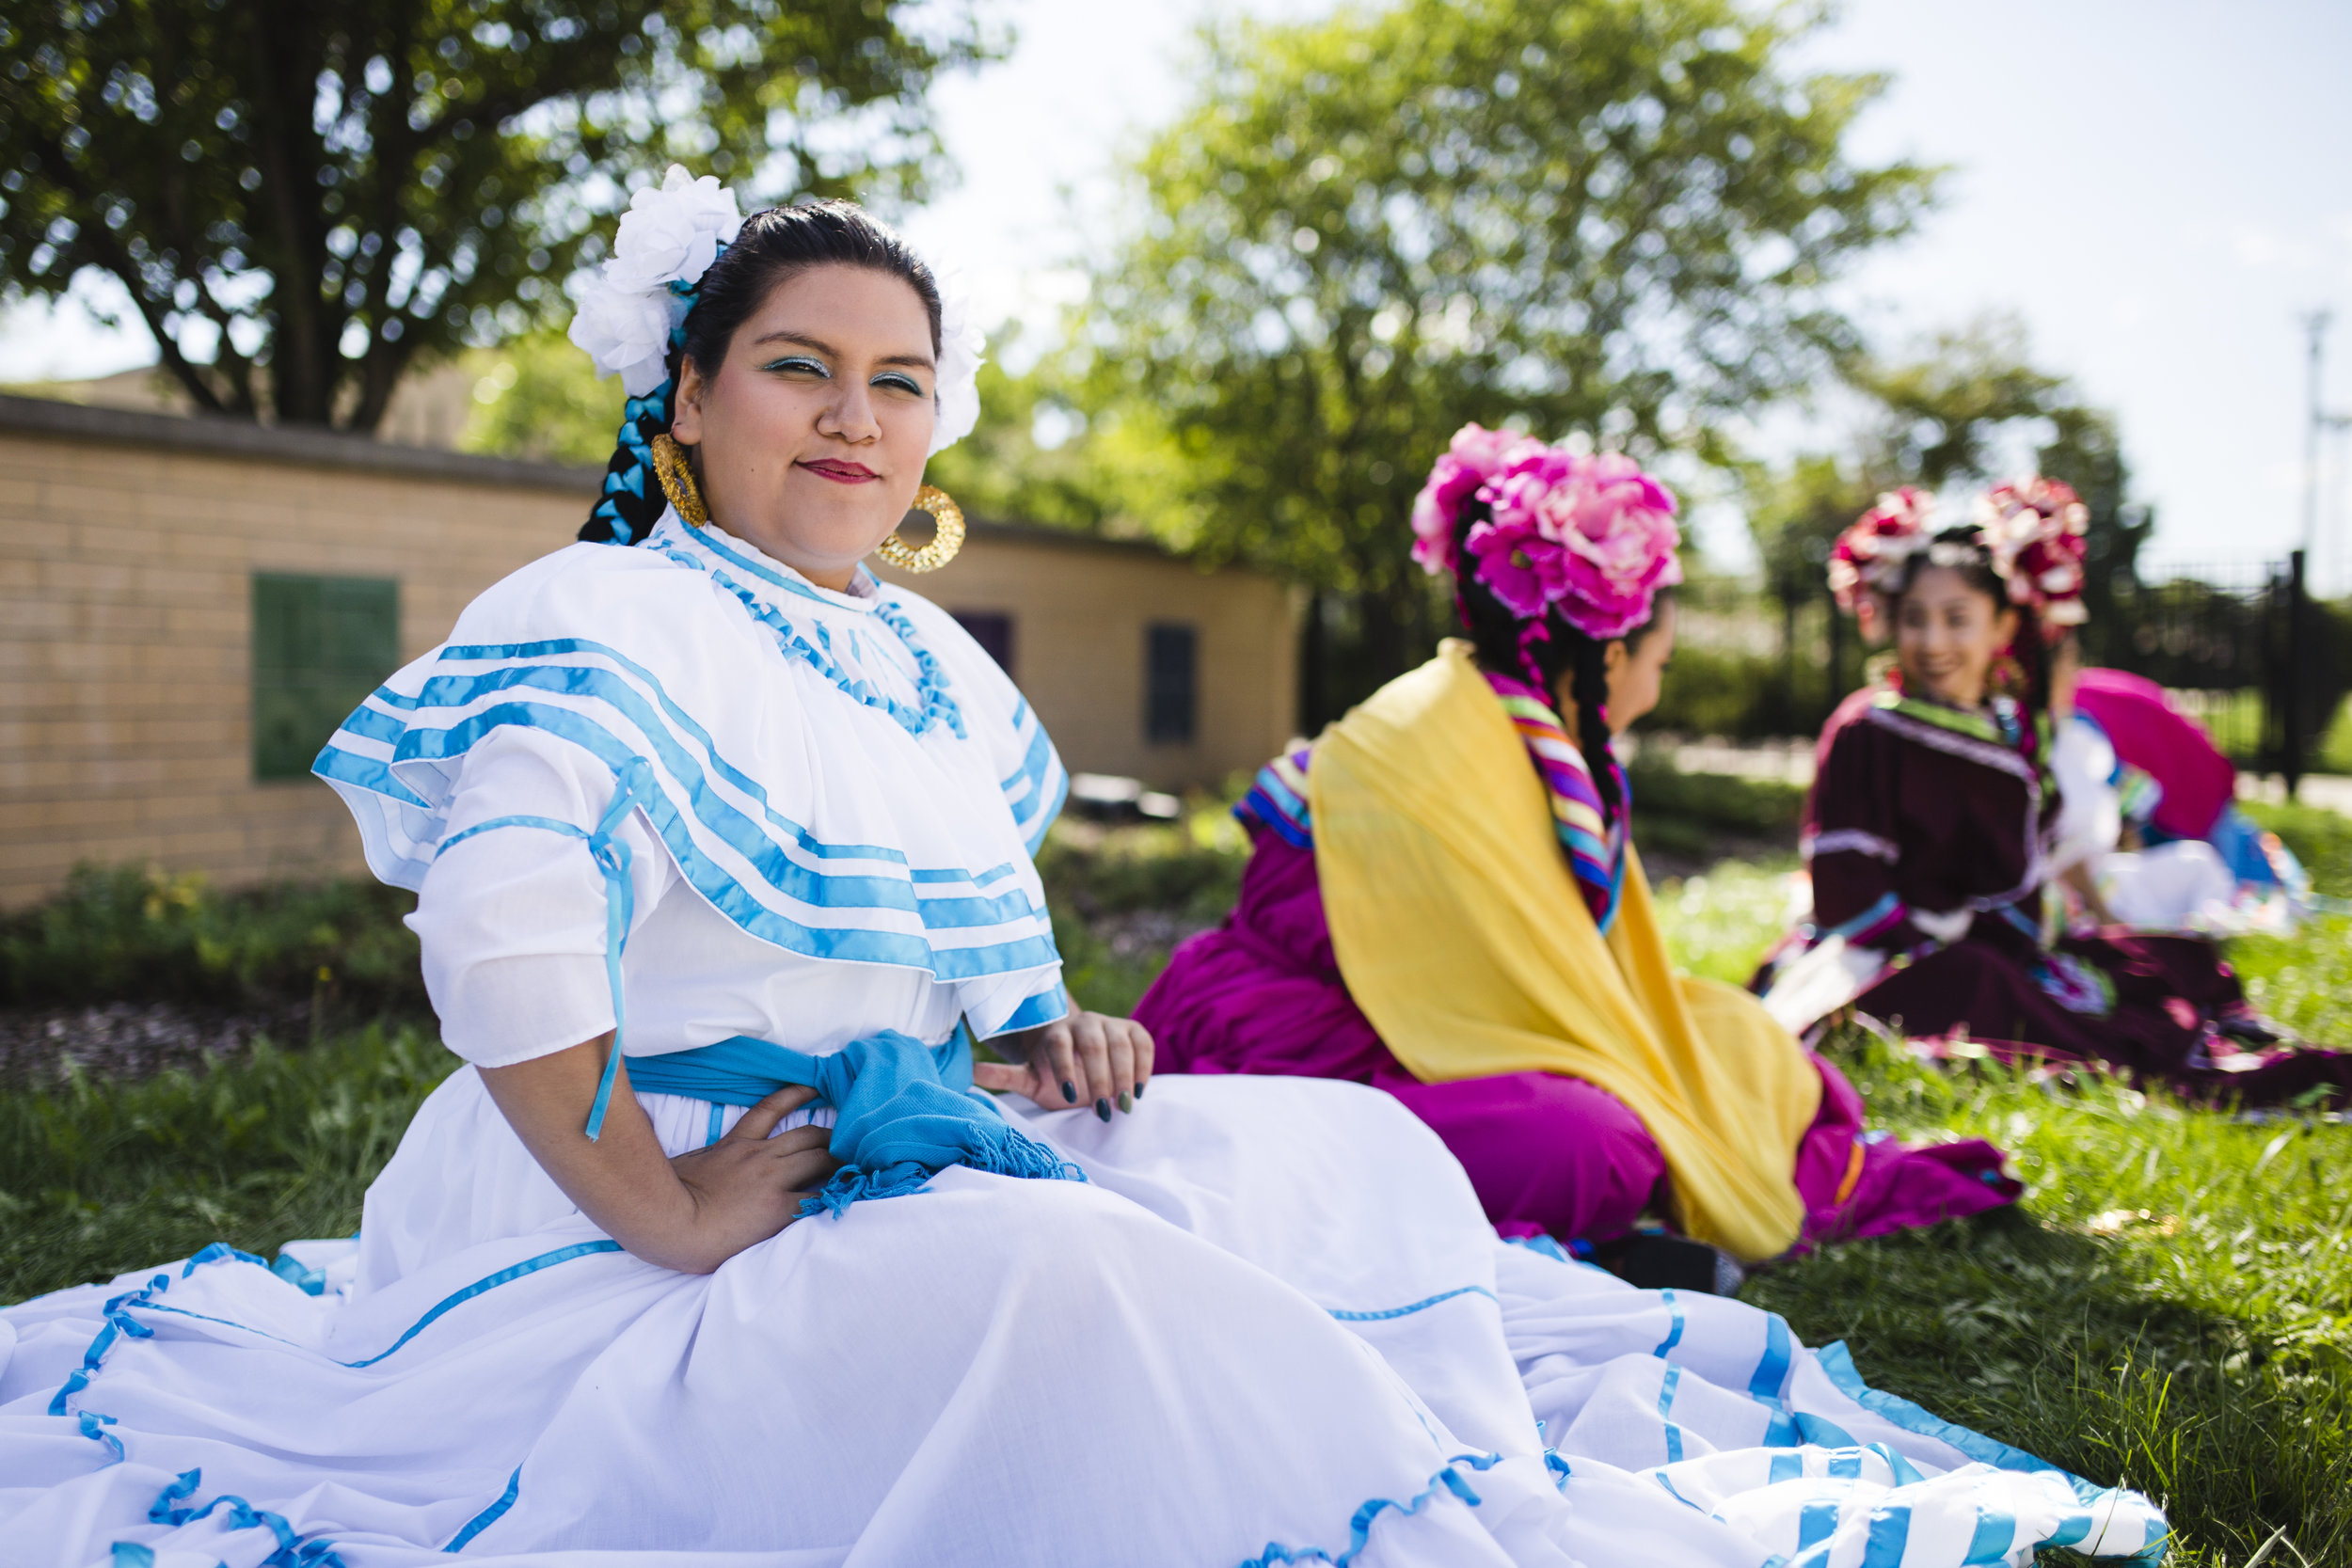 """Ivonne Acosta and her friends rest after dancing for about 1.5 miles during the Mexican Independence Day Parade in Little Village, which was themed """"families belong together."""" """"I feel like [people] are still kind of like afraid in a sense because we have been getting people that have been grabbed [by ICE],"""" said Acosta, who said that the parade was like a break for families in the community. """"They could feel like at least some time to celebrate ... because I know there's some families that are less afraid than others, so like even then, they kind of like feel a little bit more courage to go out and celebrate their culture."""""""